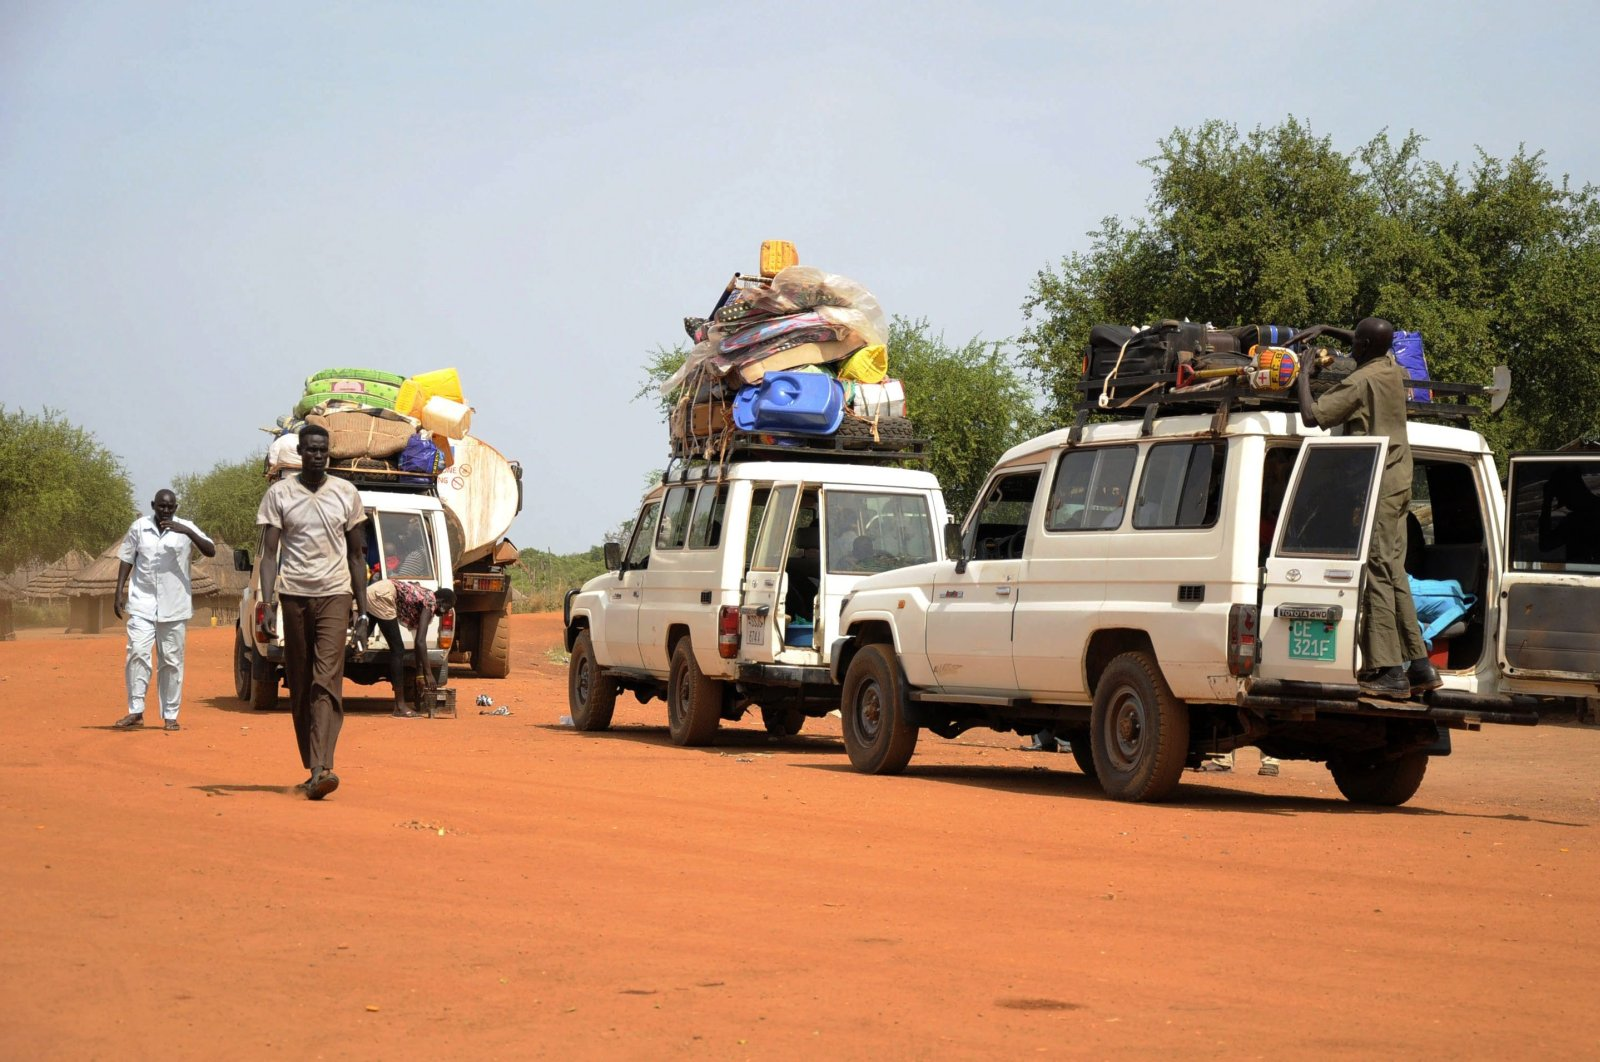 A convoy of returning residents is seen along a dirt road towards Bor, in Jonglei state, South Sudan, Dec. 8, 2014. (Reuters Photo)